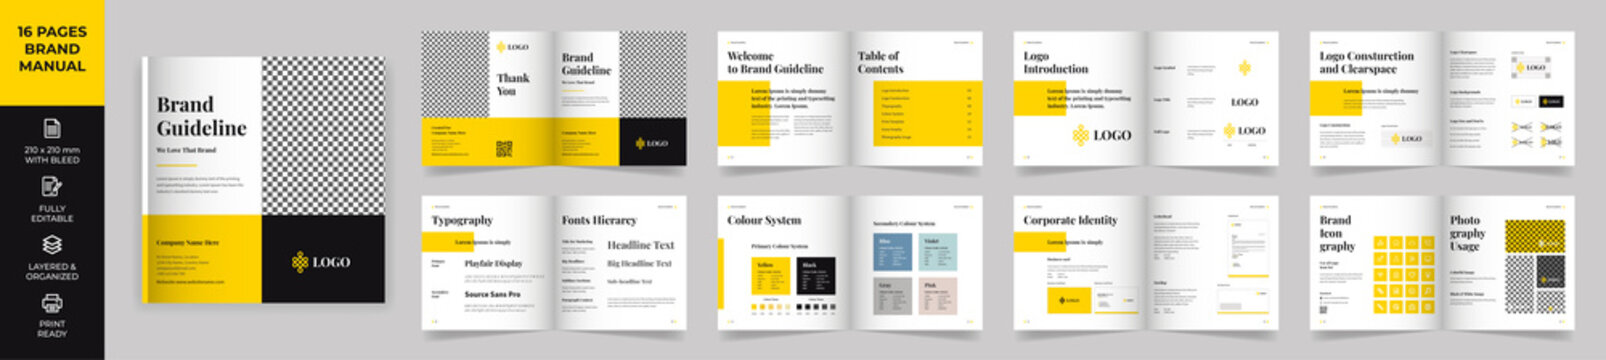 Square Brand Manual Template, Simple style and modern layout Brand Style , Brand Book, Brand Identity, Brand Guideline, Guide Book